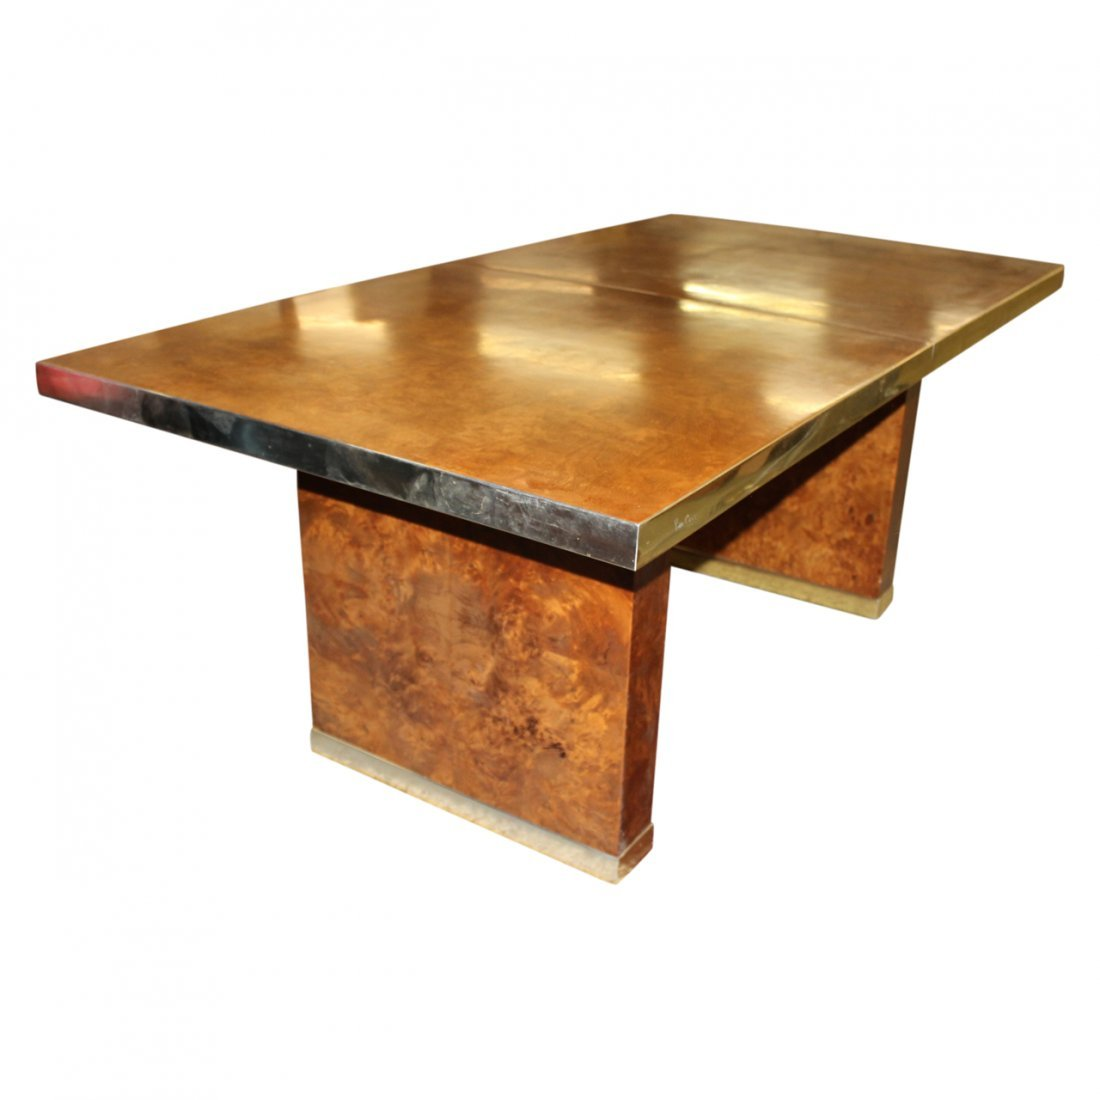 Pierre Cardin Burl Wood and Brass Dining Table